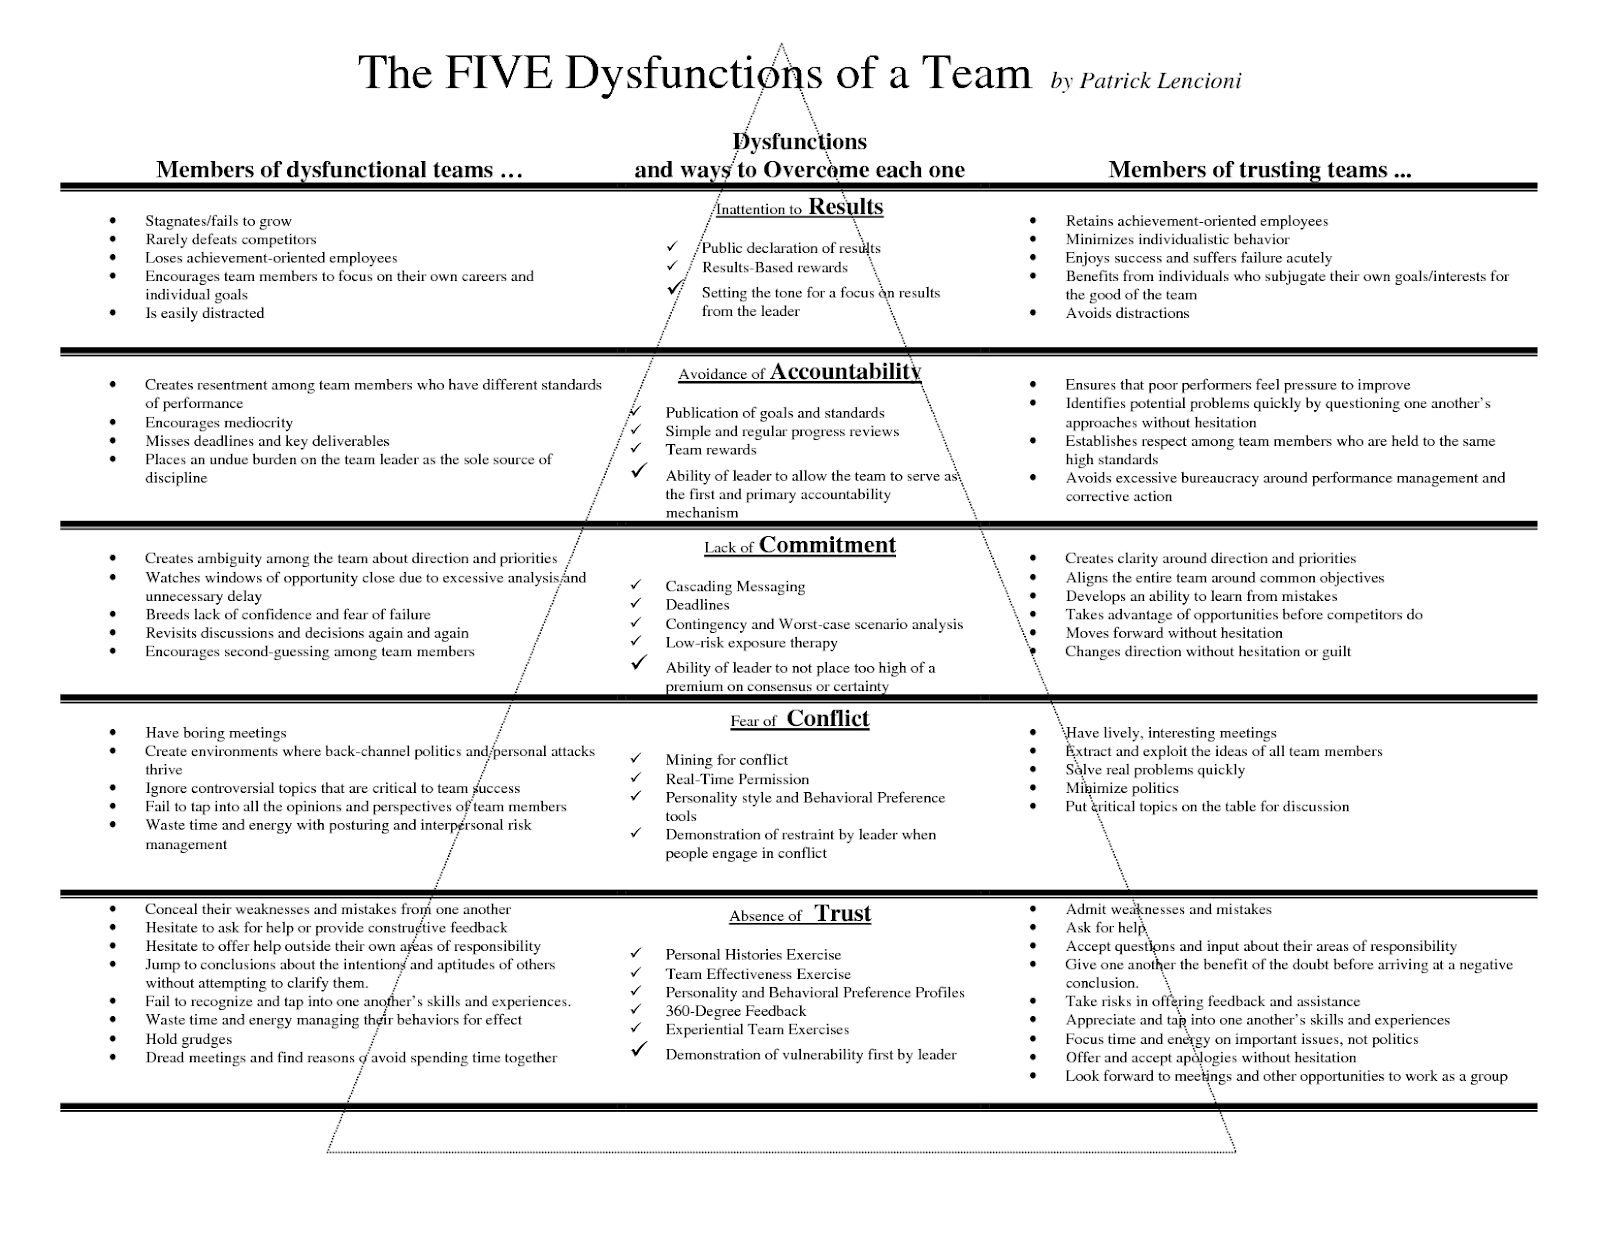 dysfunction pyramid detailed view